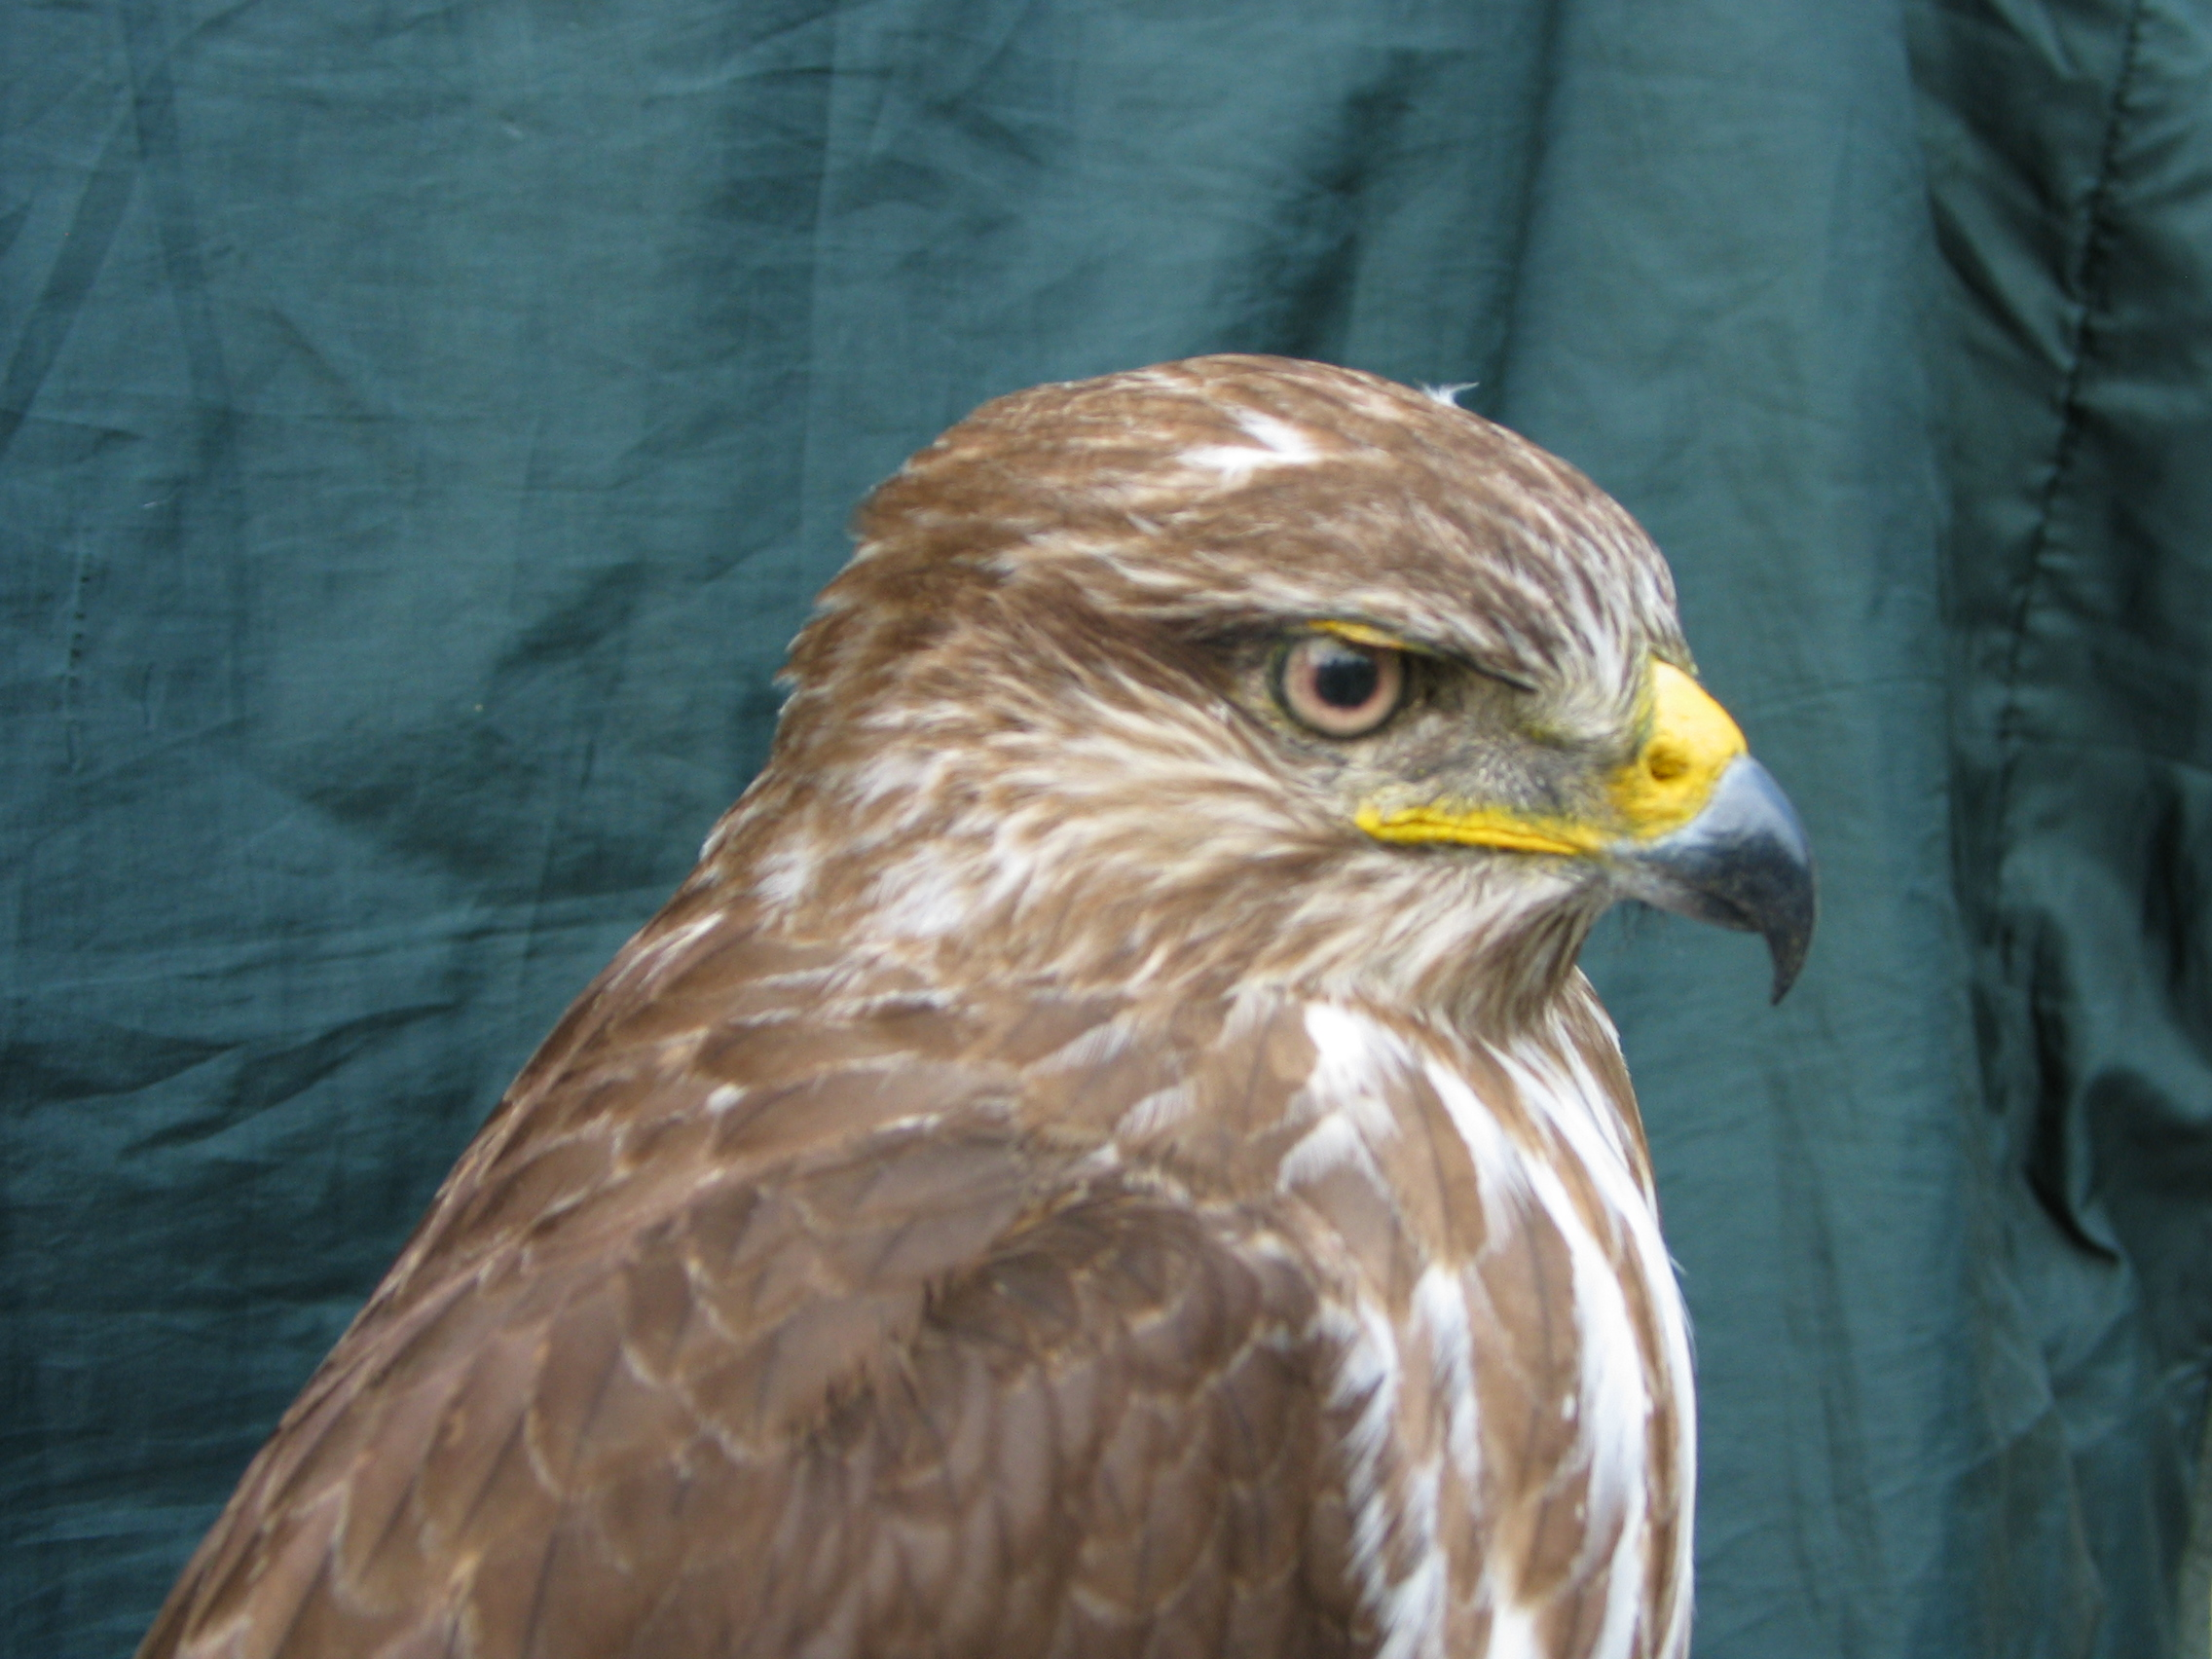 Bird Taxidermy Common Buzzard - Buteo buteo 8876 head